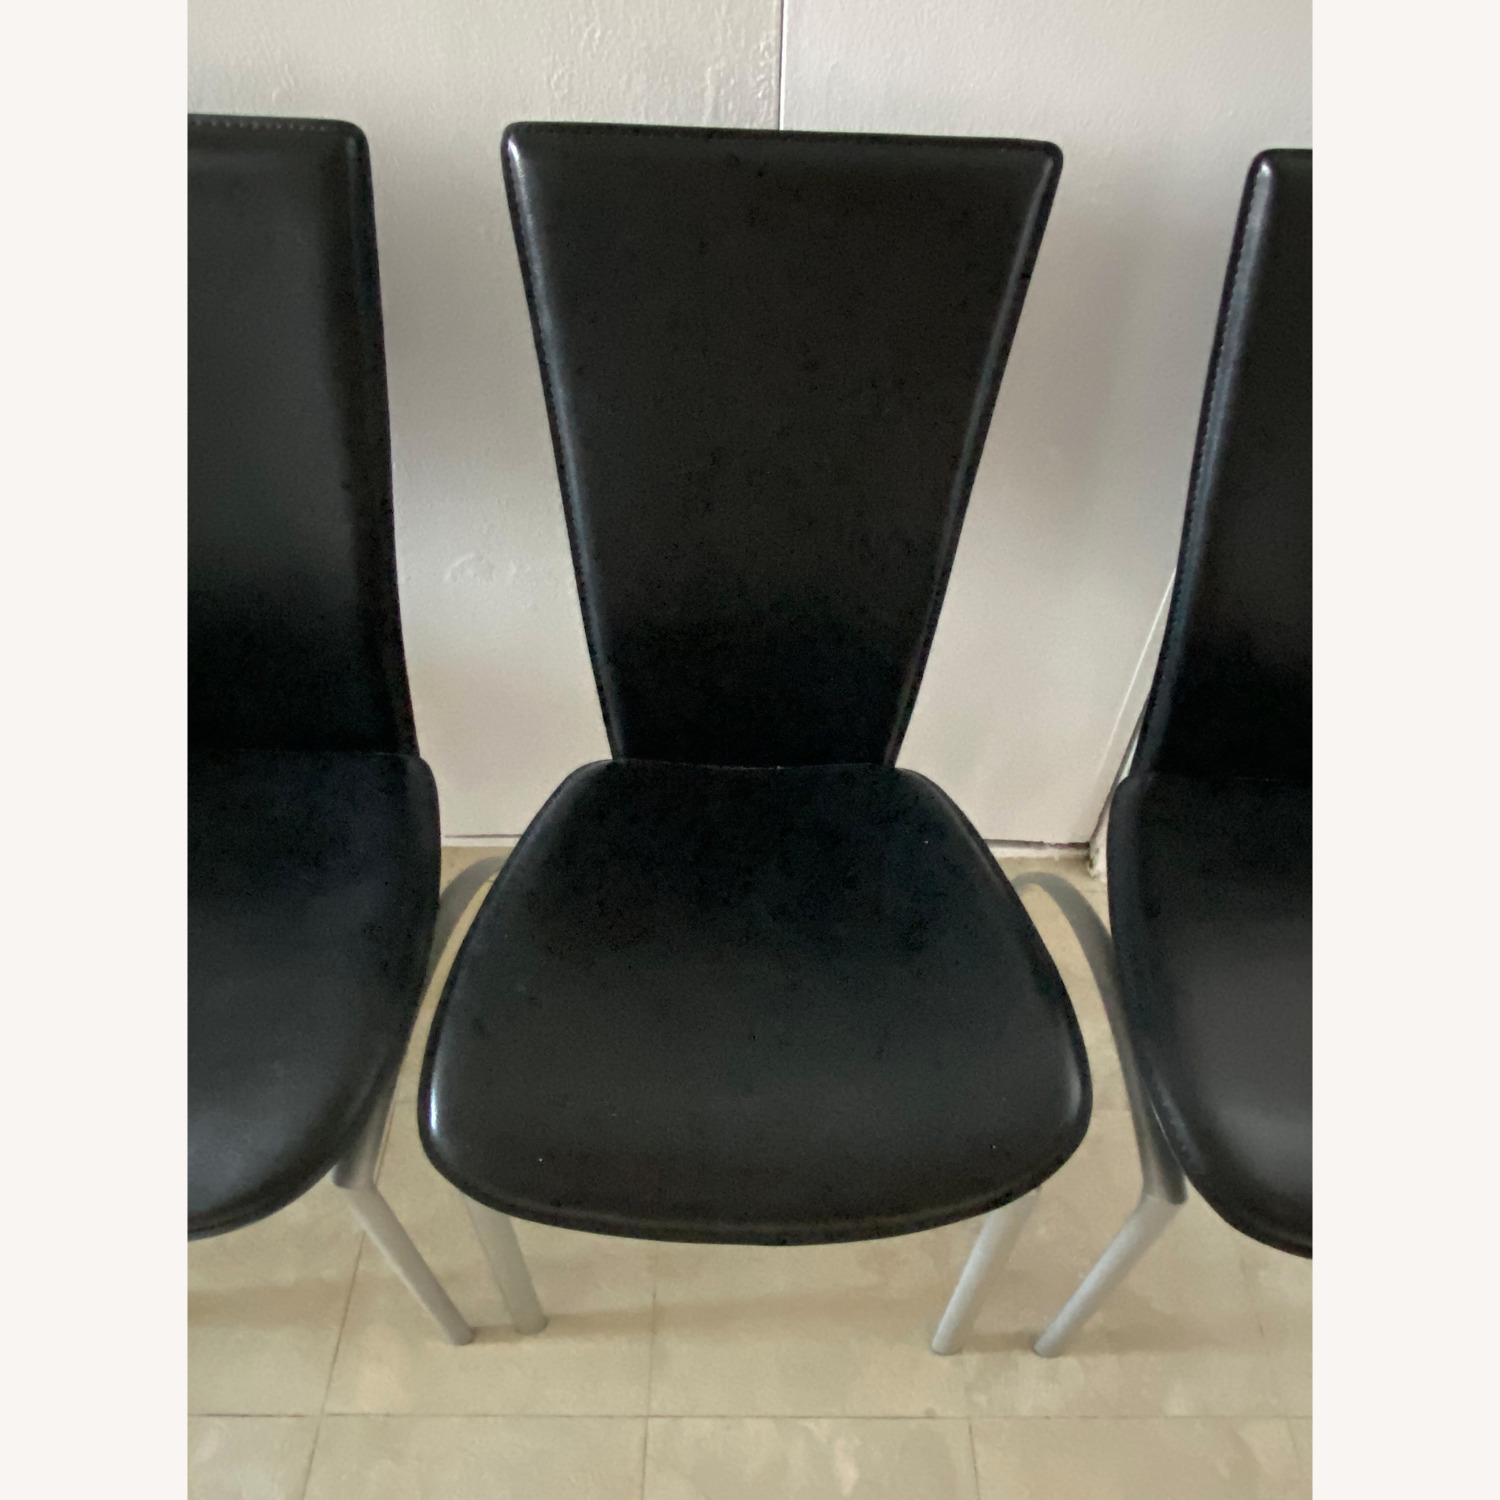 Glass Dining Table with 4 Chairs - image-24